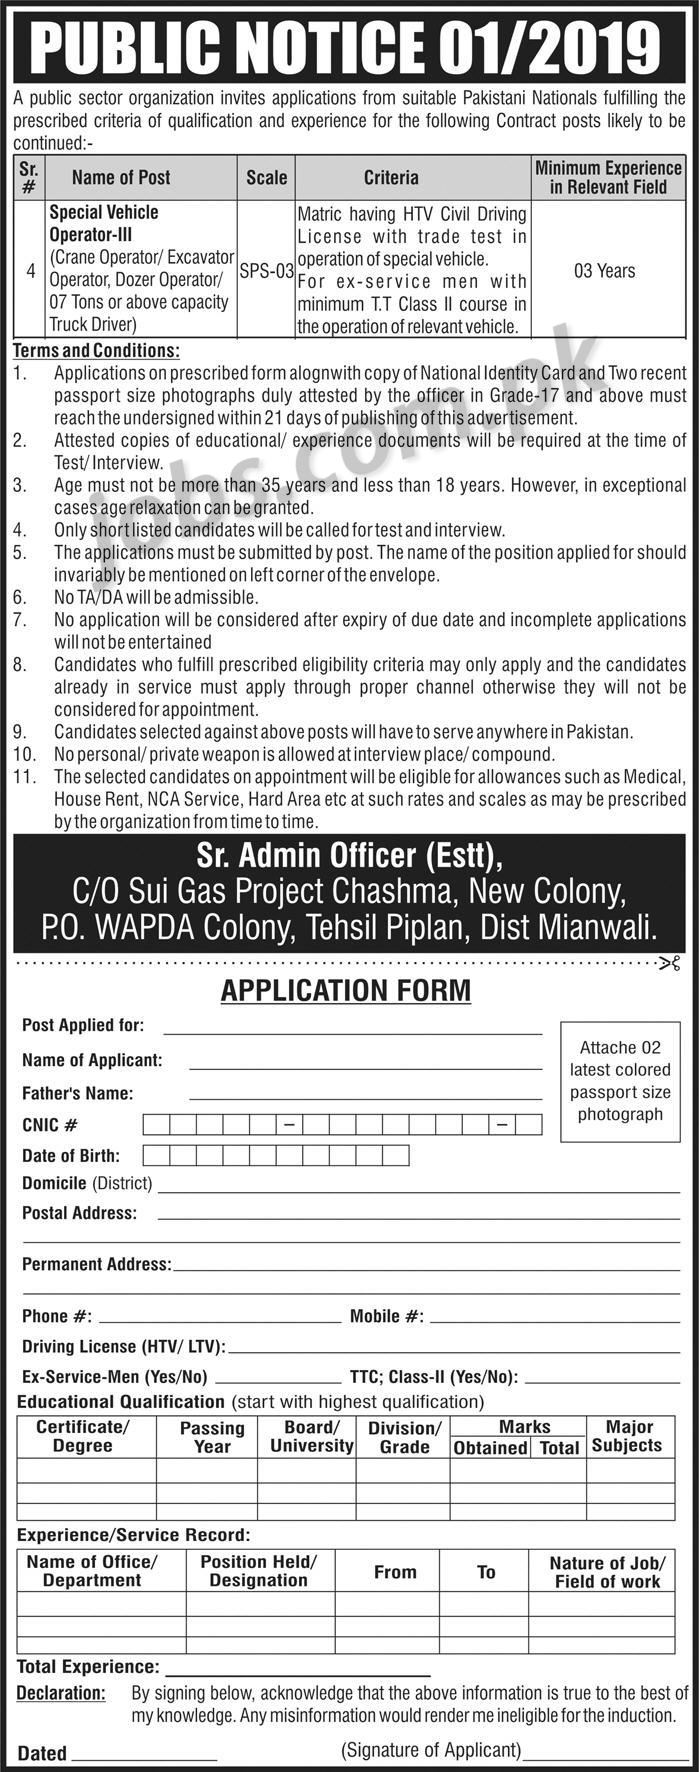 PAEC Jobs 2019 for Special Vehicle Operator-III on 18 February, 2019